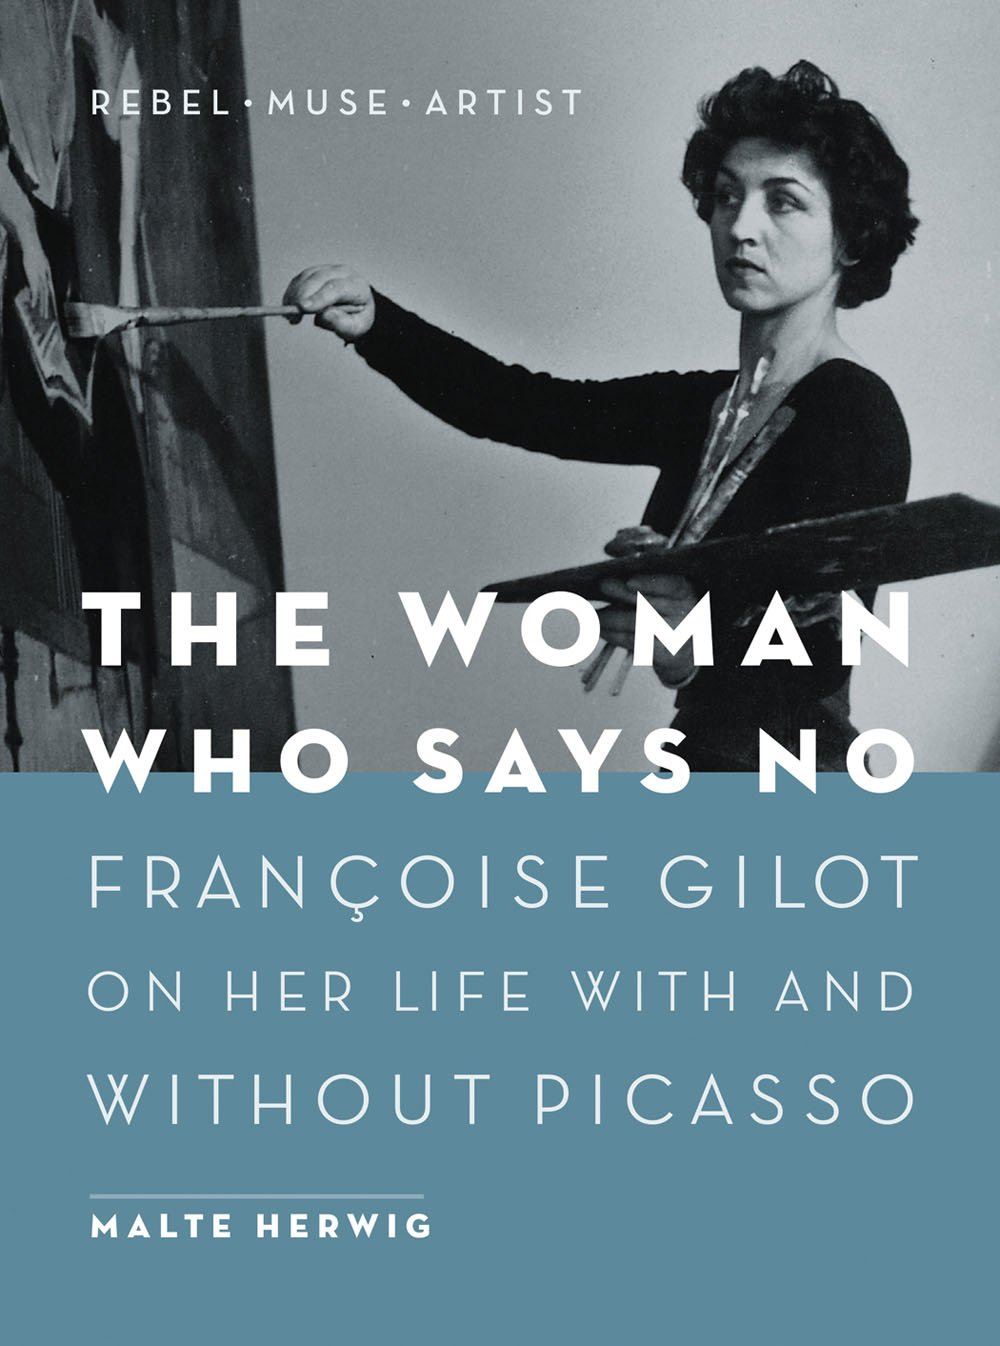 The Woman Who Says No: Françoise Gilot on Her Life With and Without Picasso - Rebel, Muse, Artist por Malte Herwig